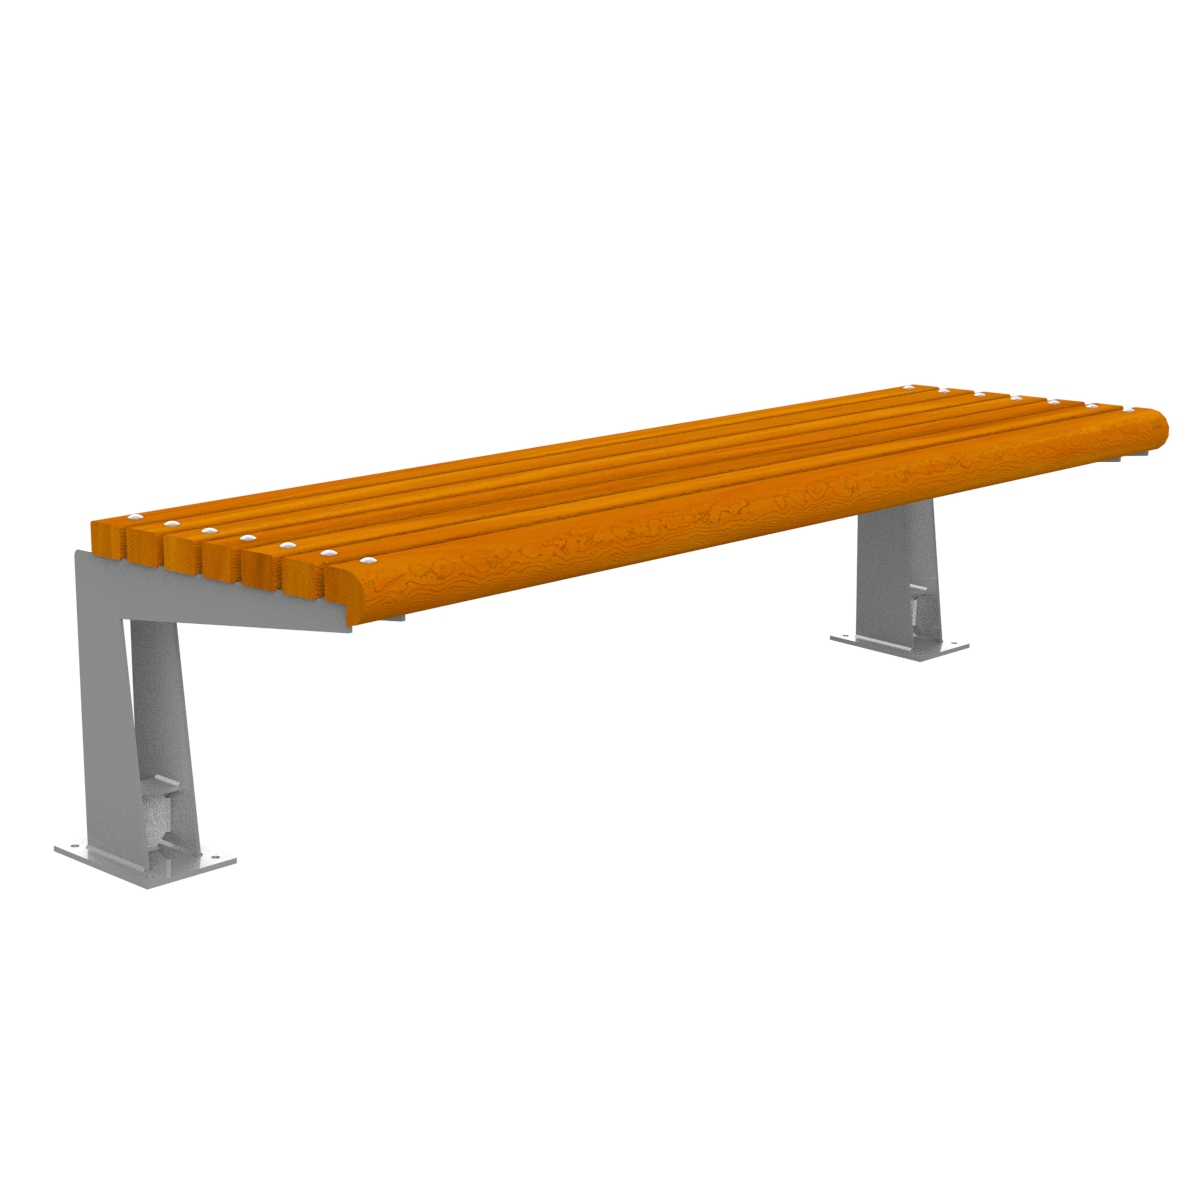 Ronda Wood Bench without backrest urban furniture parks and gardens